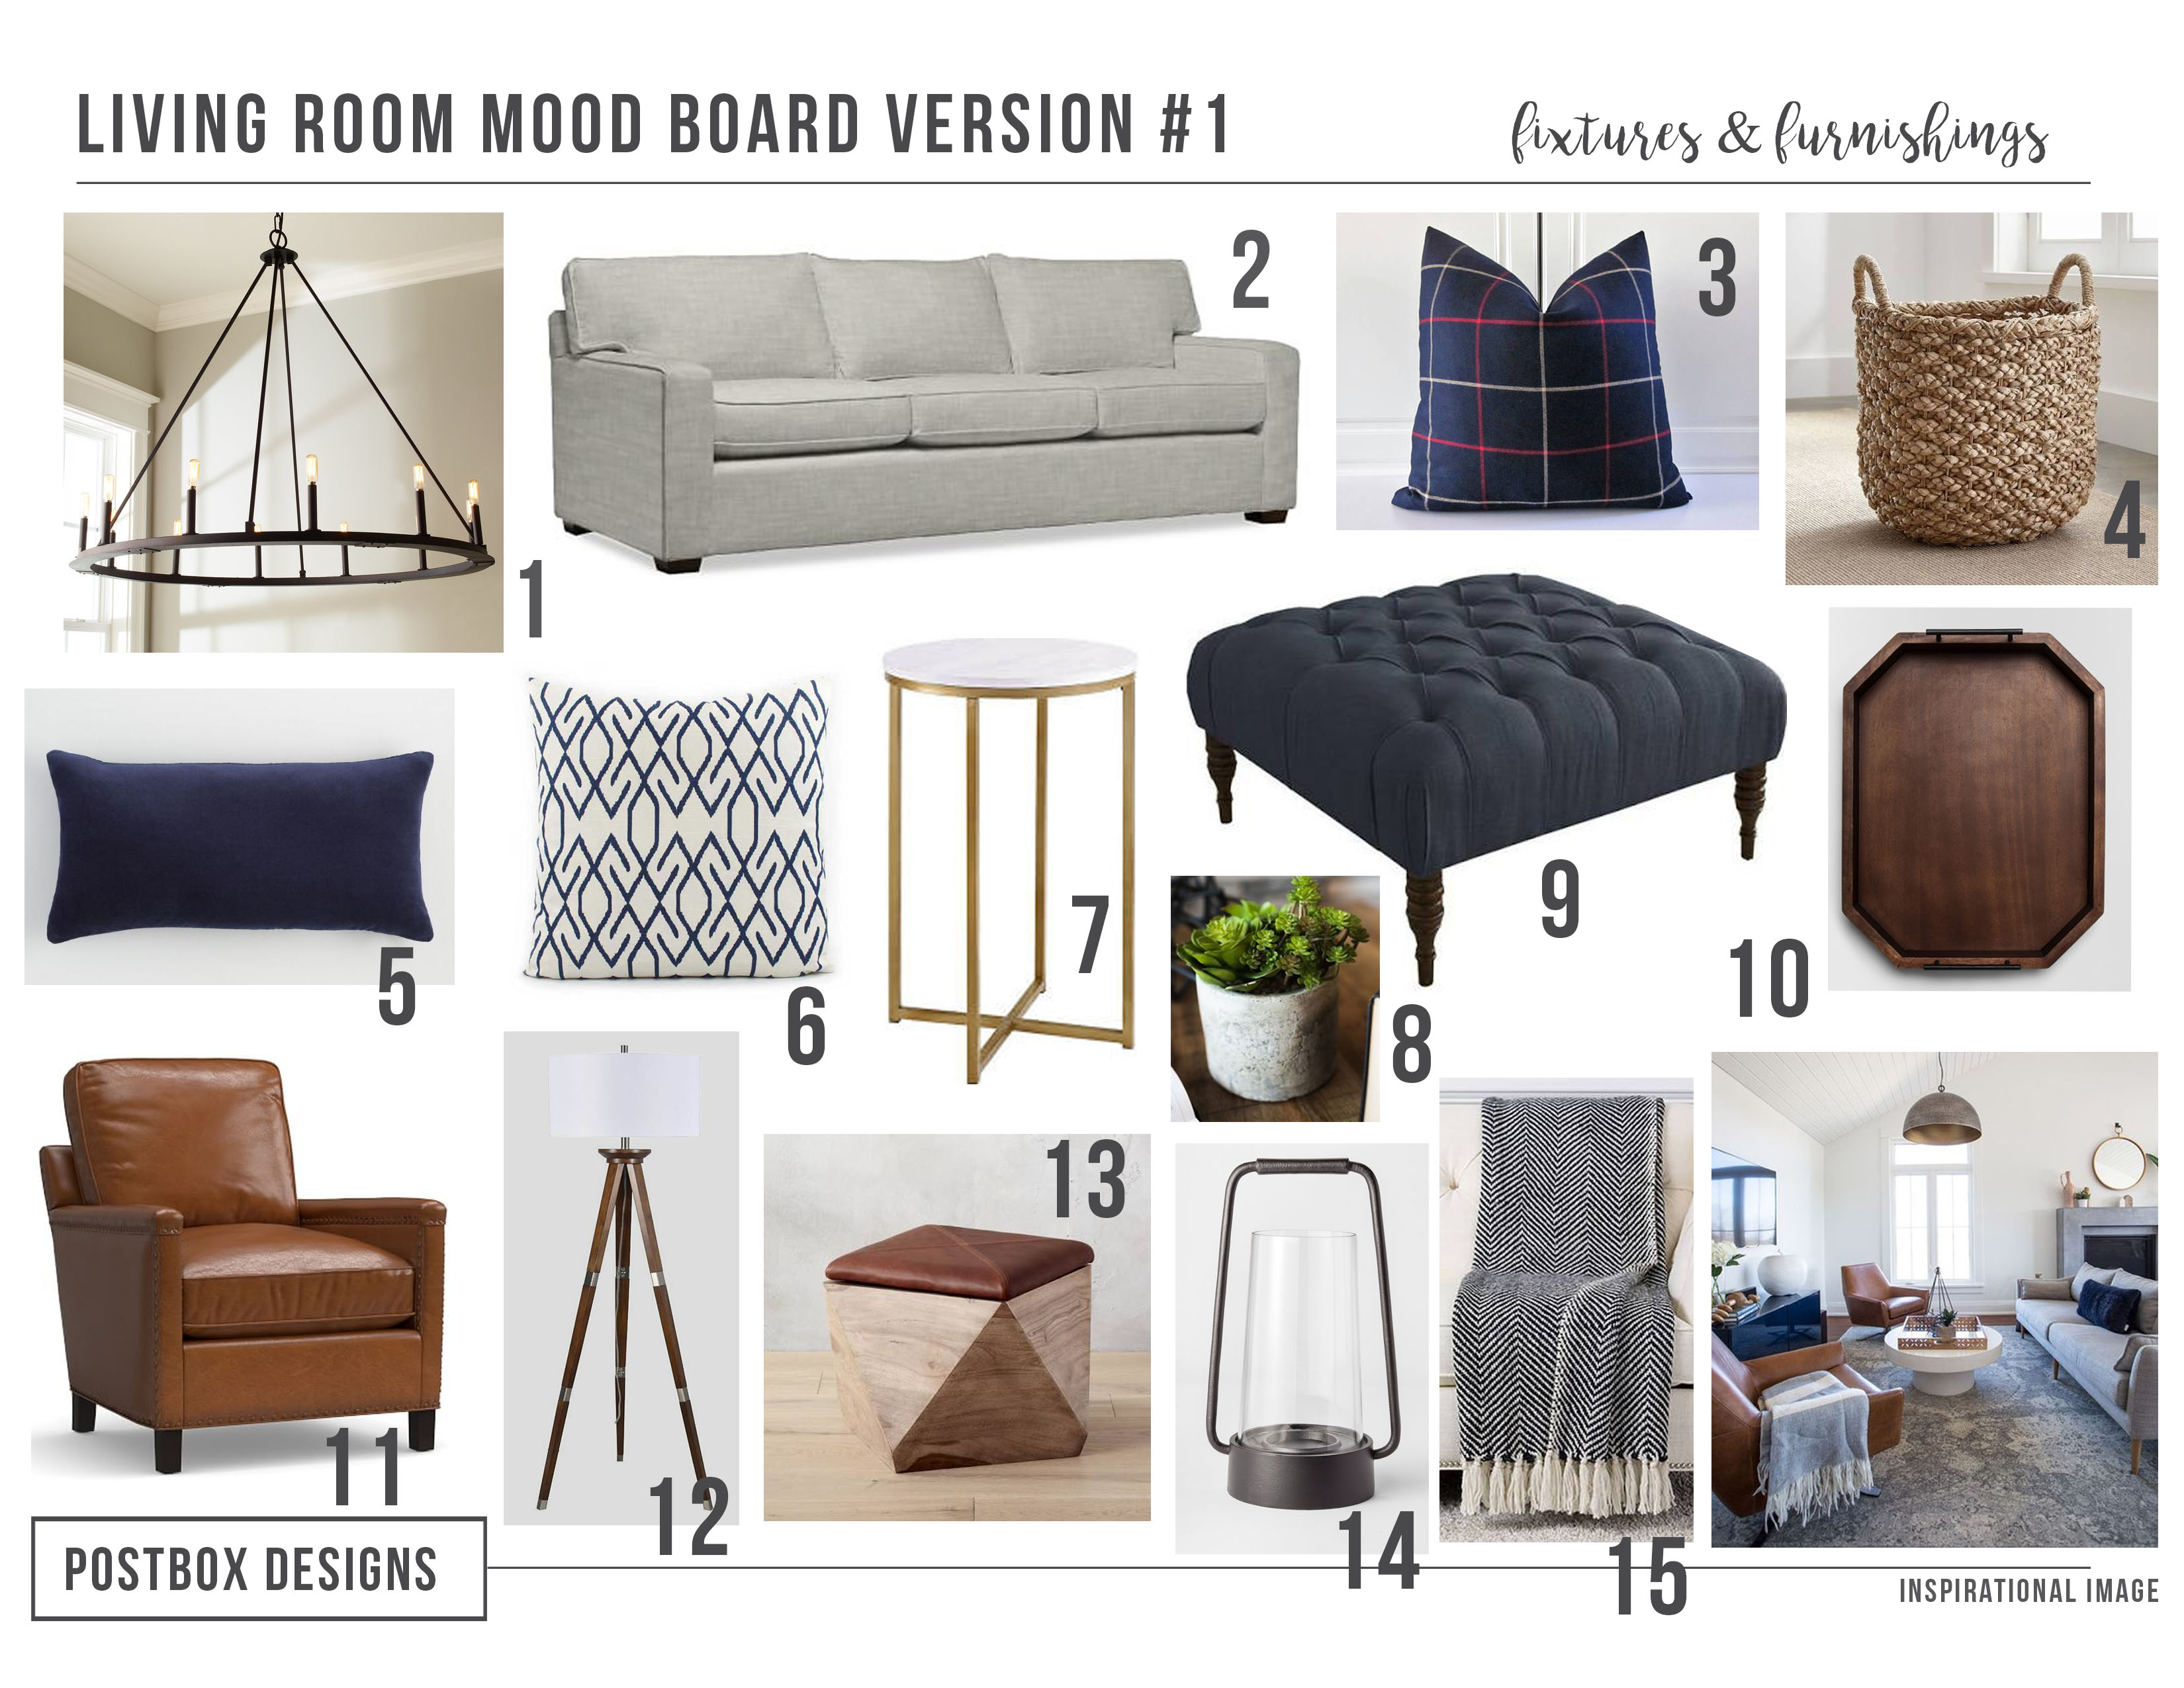 Modern meets farmhouse family room makeover postbox designs for Modern living room mood board